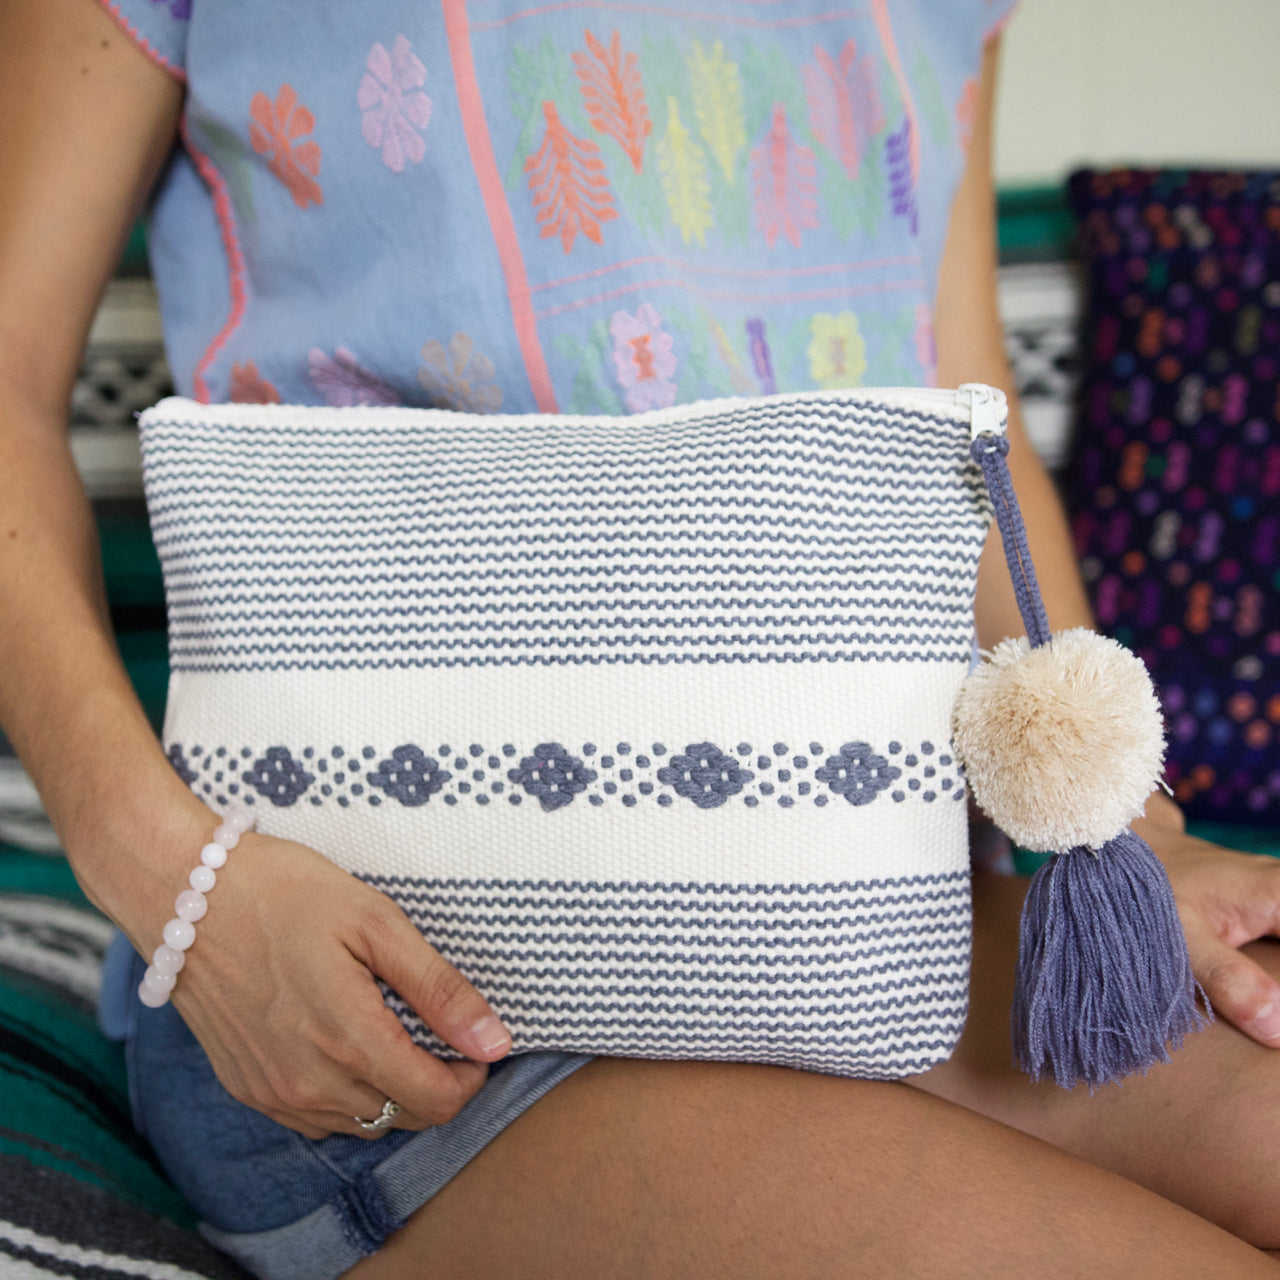 Jalieza Striped Clutch 17  Clutch White - Cielo Collective handmade Mexico Guatemala